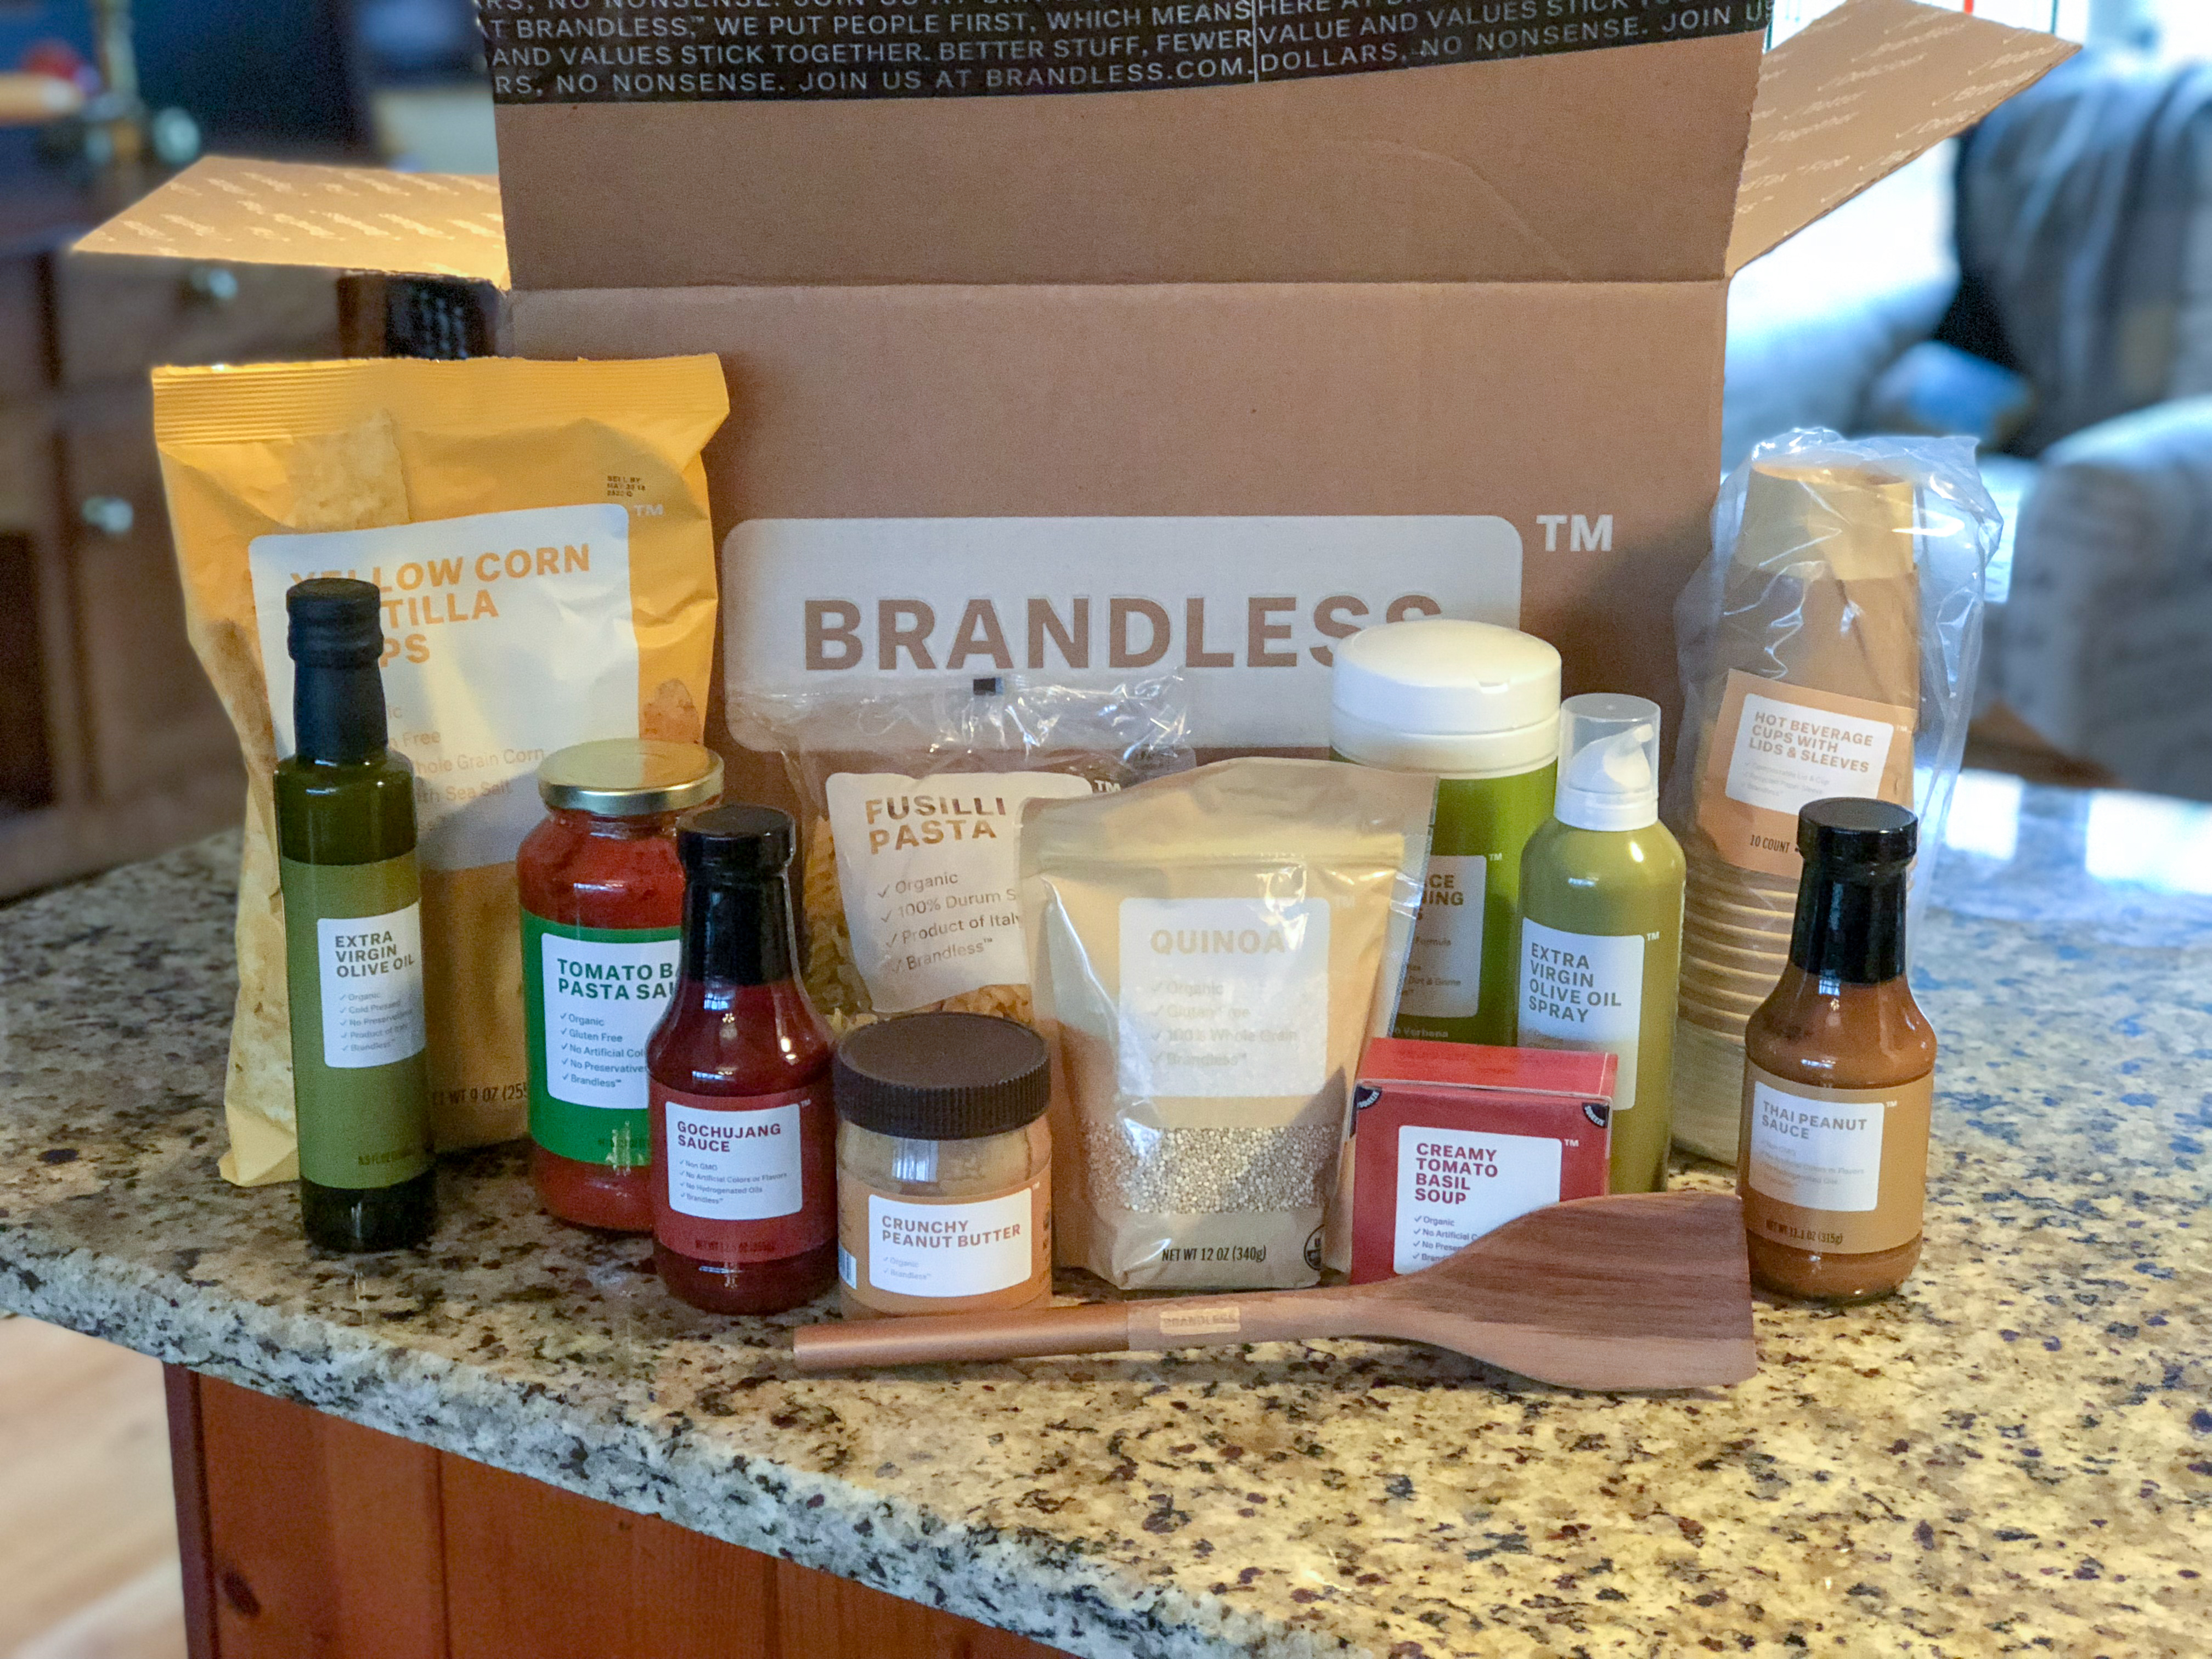 brandless essentials 3 each – Brandless items box